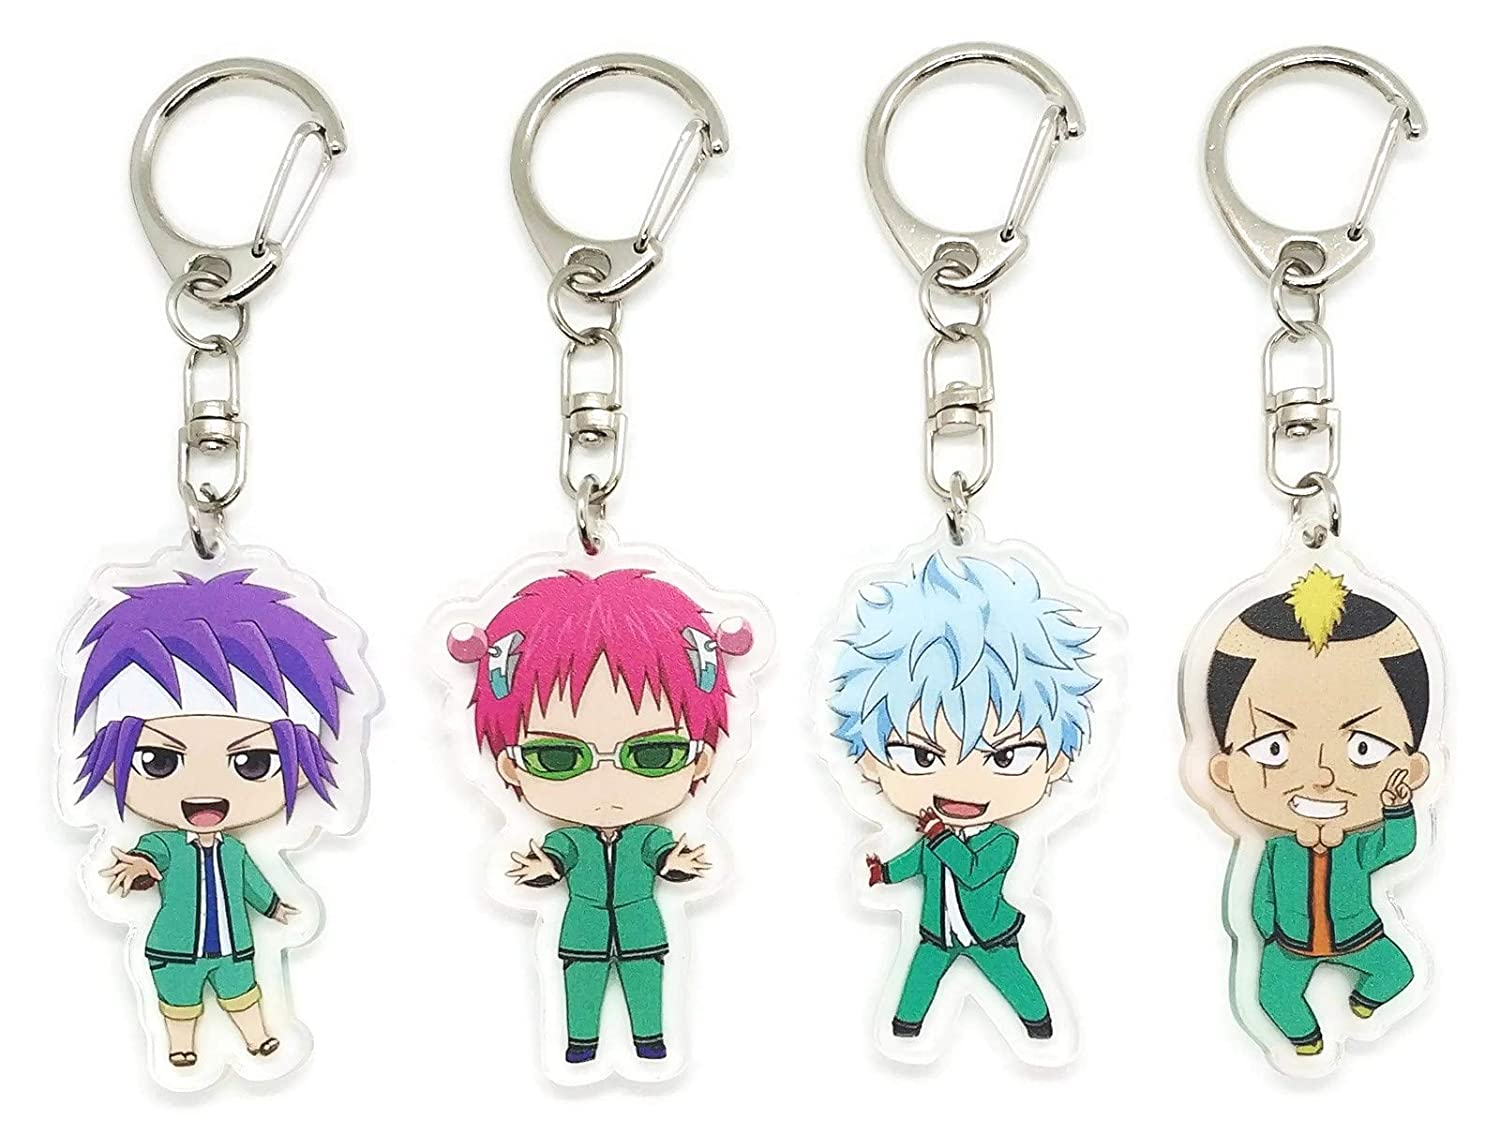 EBTY-Dreams Inc. - Set of 4 The Disastrous Life of Saiki K. Anime Acrylic Keychain Kusuo Saiki, Shun Kaidou, Riki Nendou, Reita Toritsuka